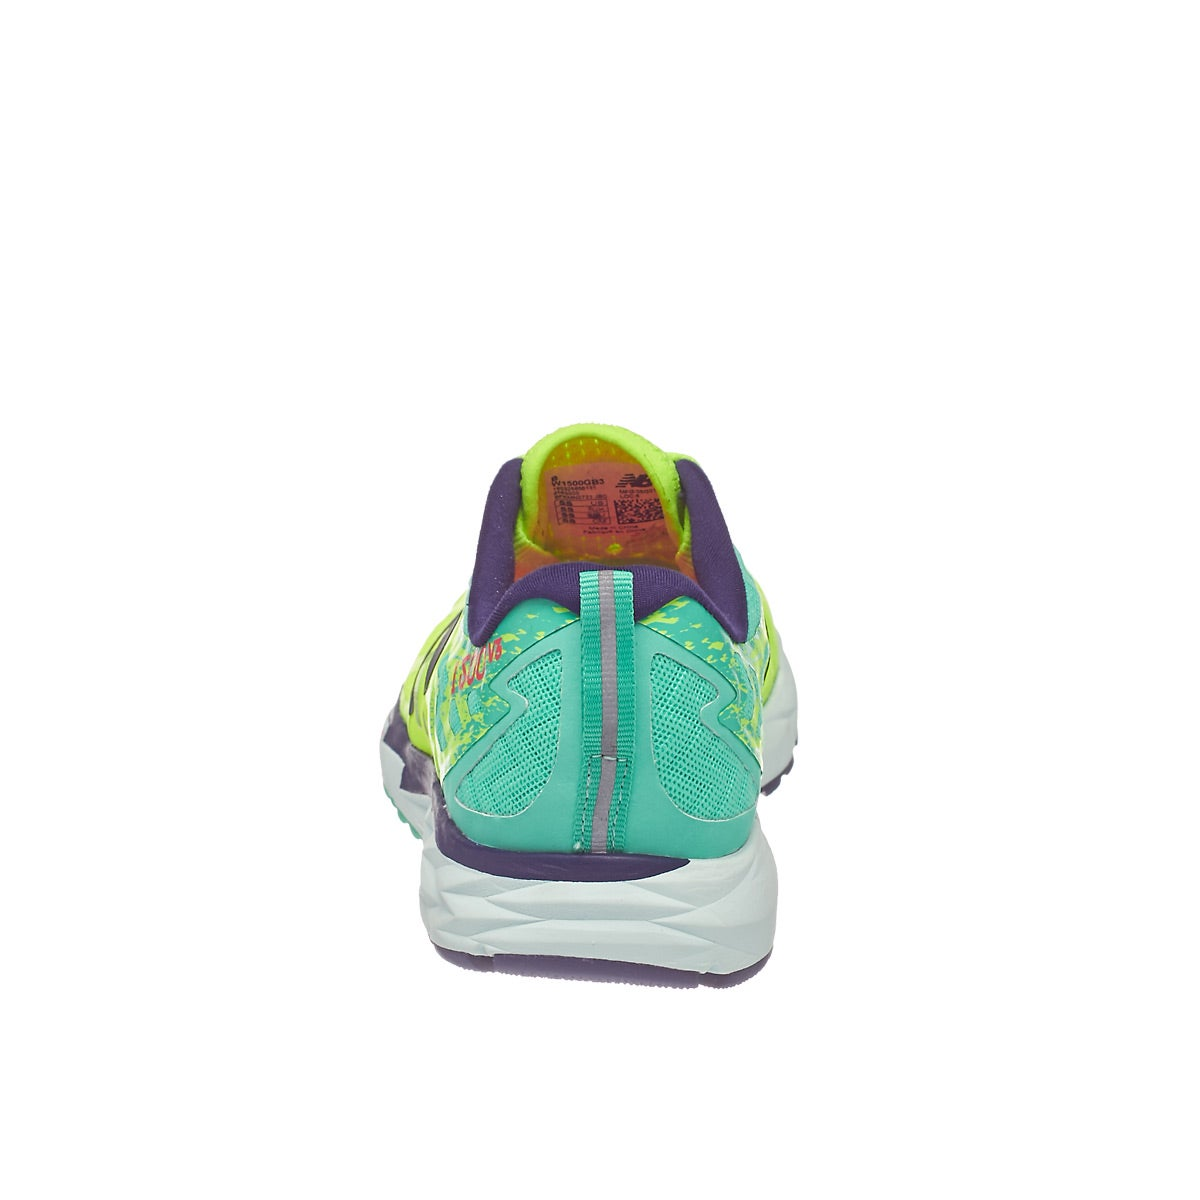 the latest 25bc9 36aff New Balance NBX 1500 v3 Women's Shoes Lime Glo 360° View ...